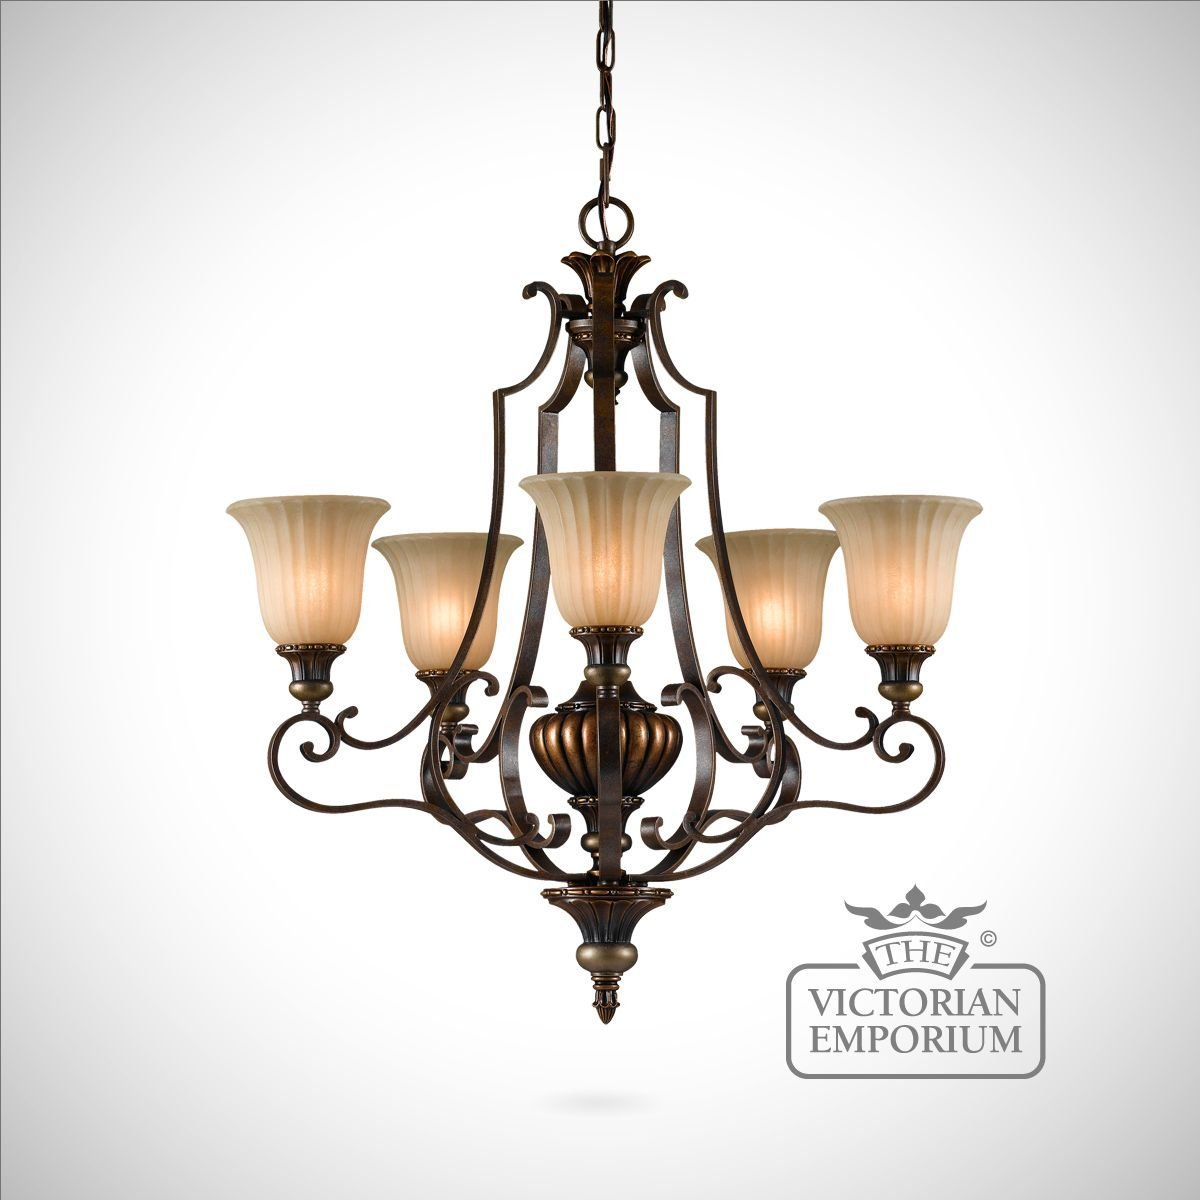 Gold and bronze decorative 5 light chandelier ceiling chandeliers - Lighting and chandeliers ...